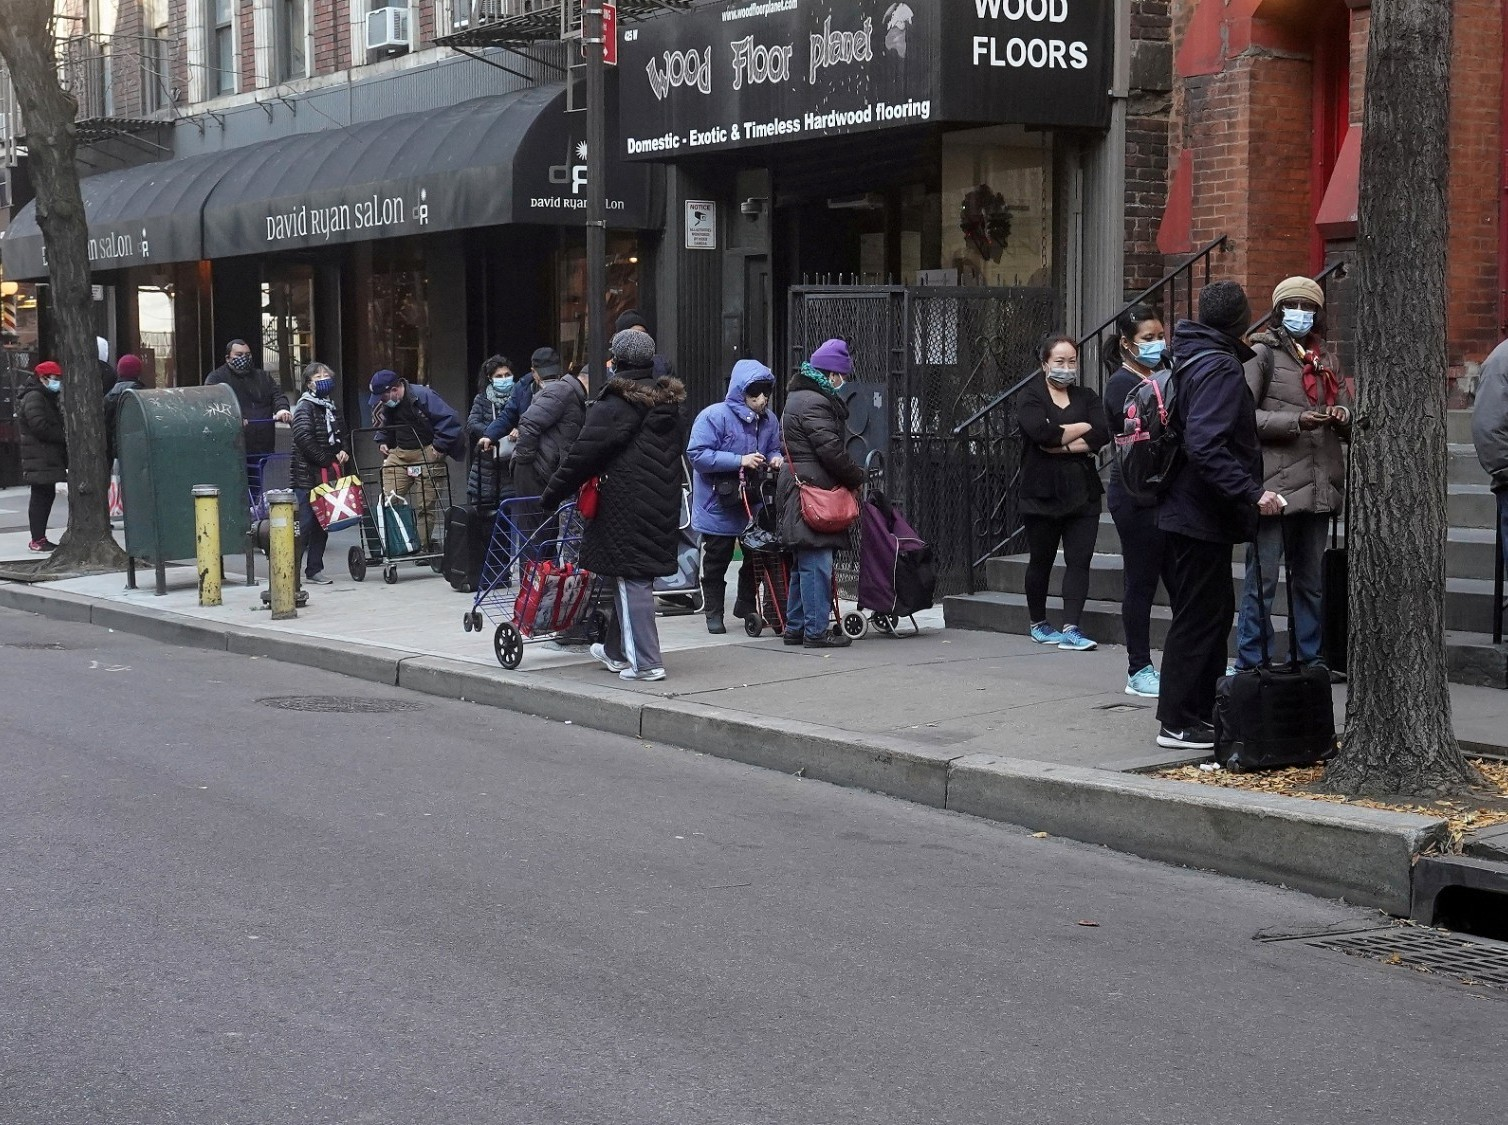 People wait in line at the St. Clements Food Pantry in New York City, December 11, 2020. Photo by Carlo Allegri/Reuters